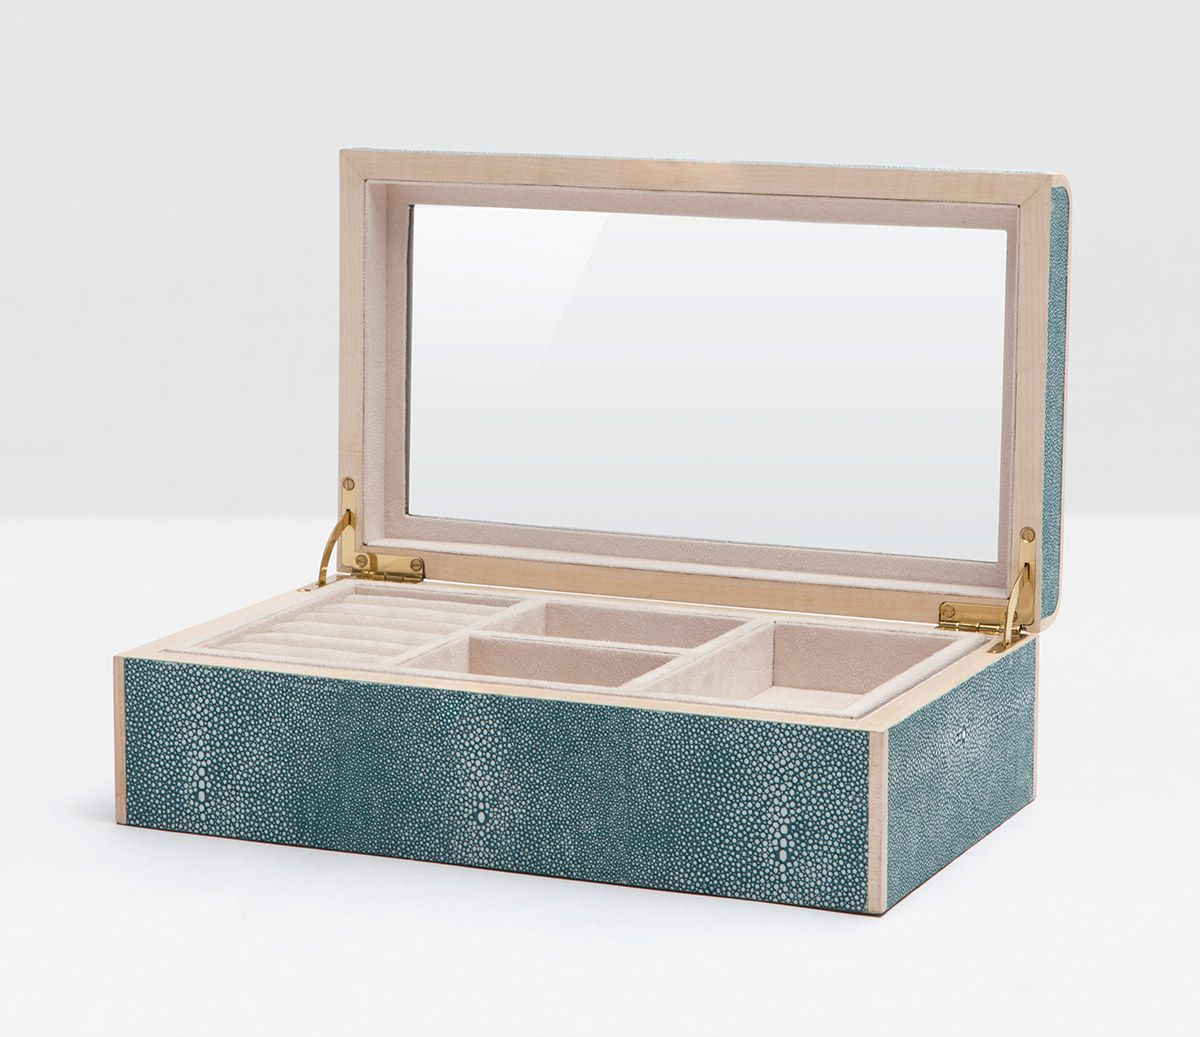 Pigeon Poodle Rennes Large Jewelry Box in Turquoise Faux Shagreen